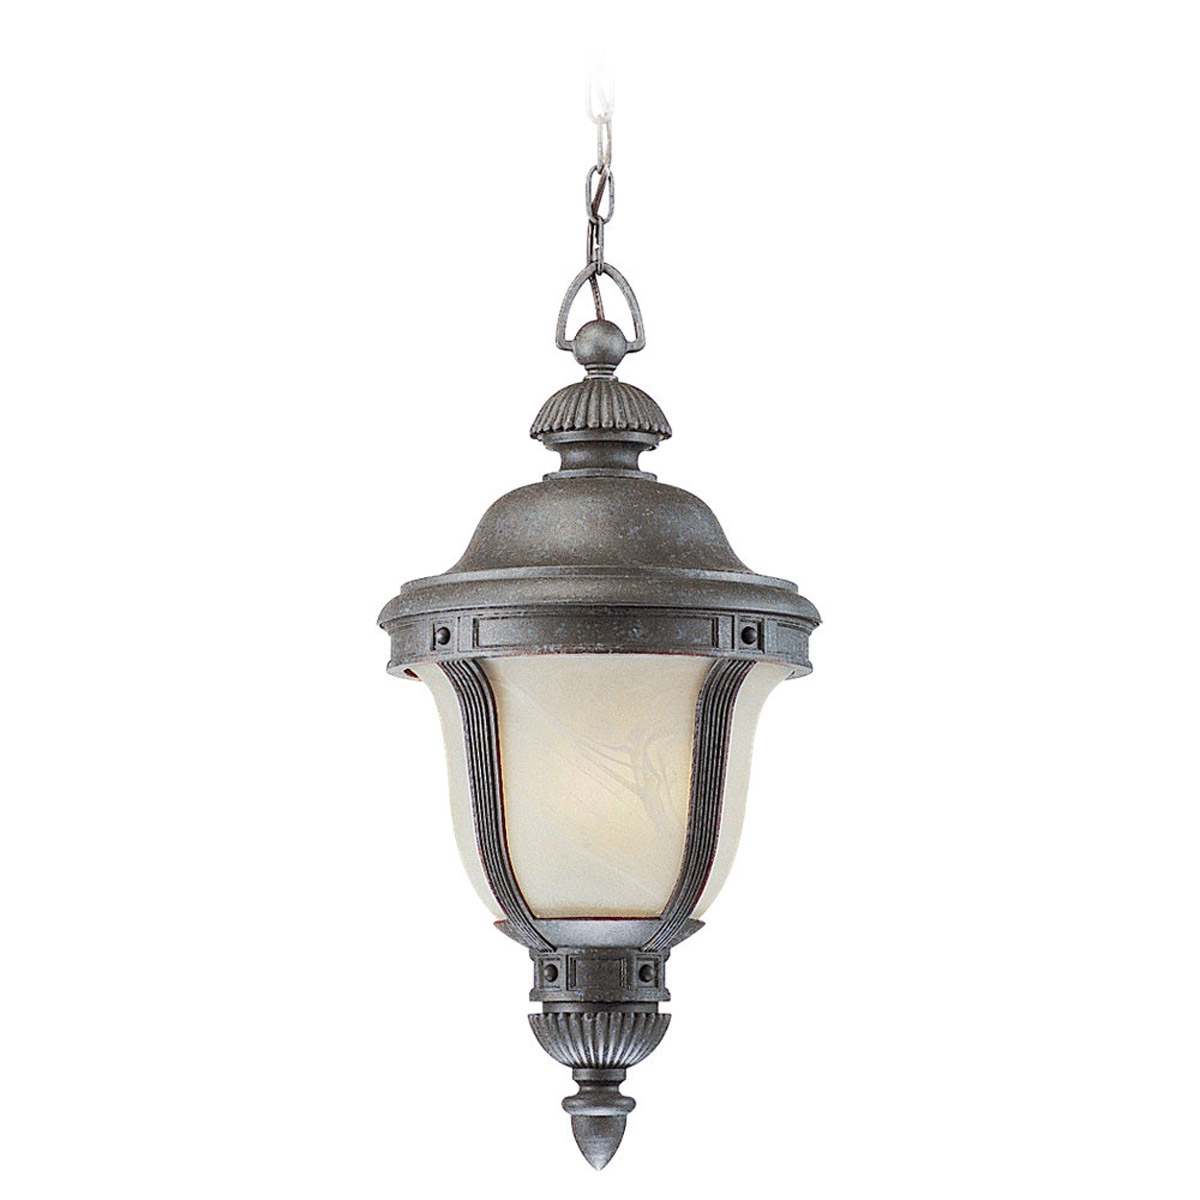 Sea Gull Lighting Winston Court 1 Light Outdoor Pendant in Oxford Bronze 69485PBLE-746